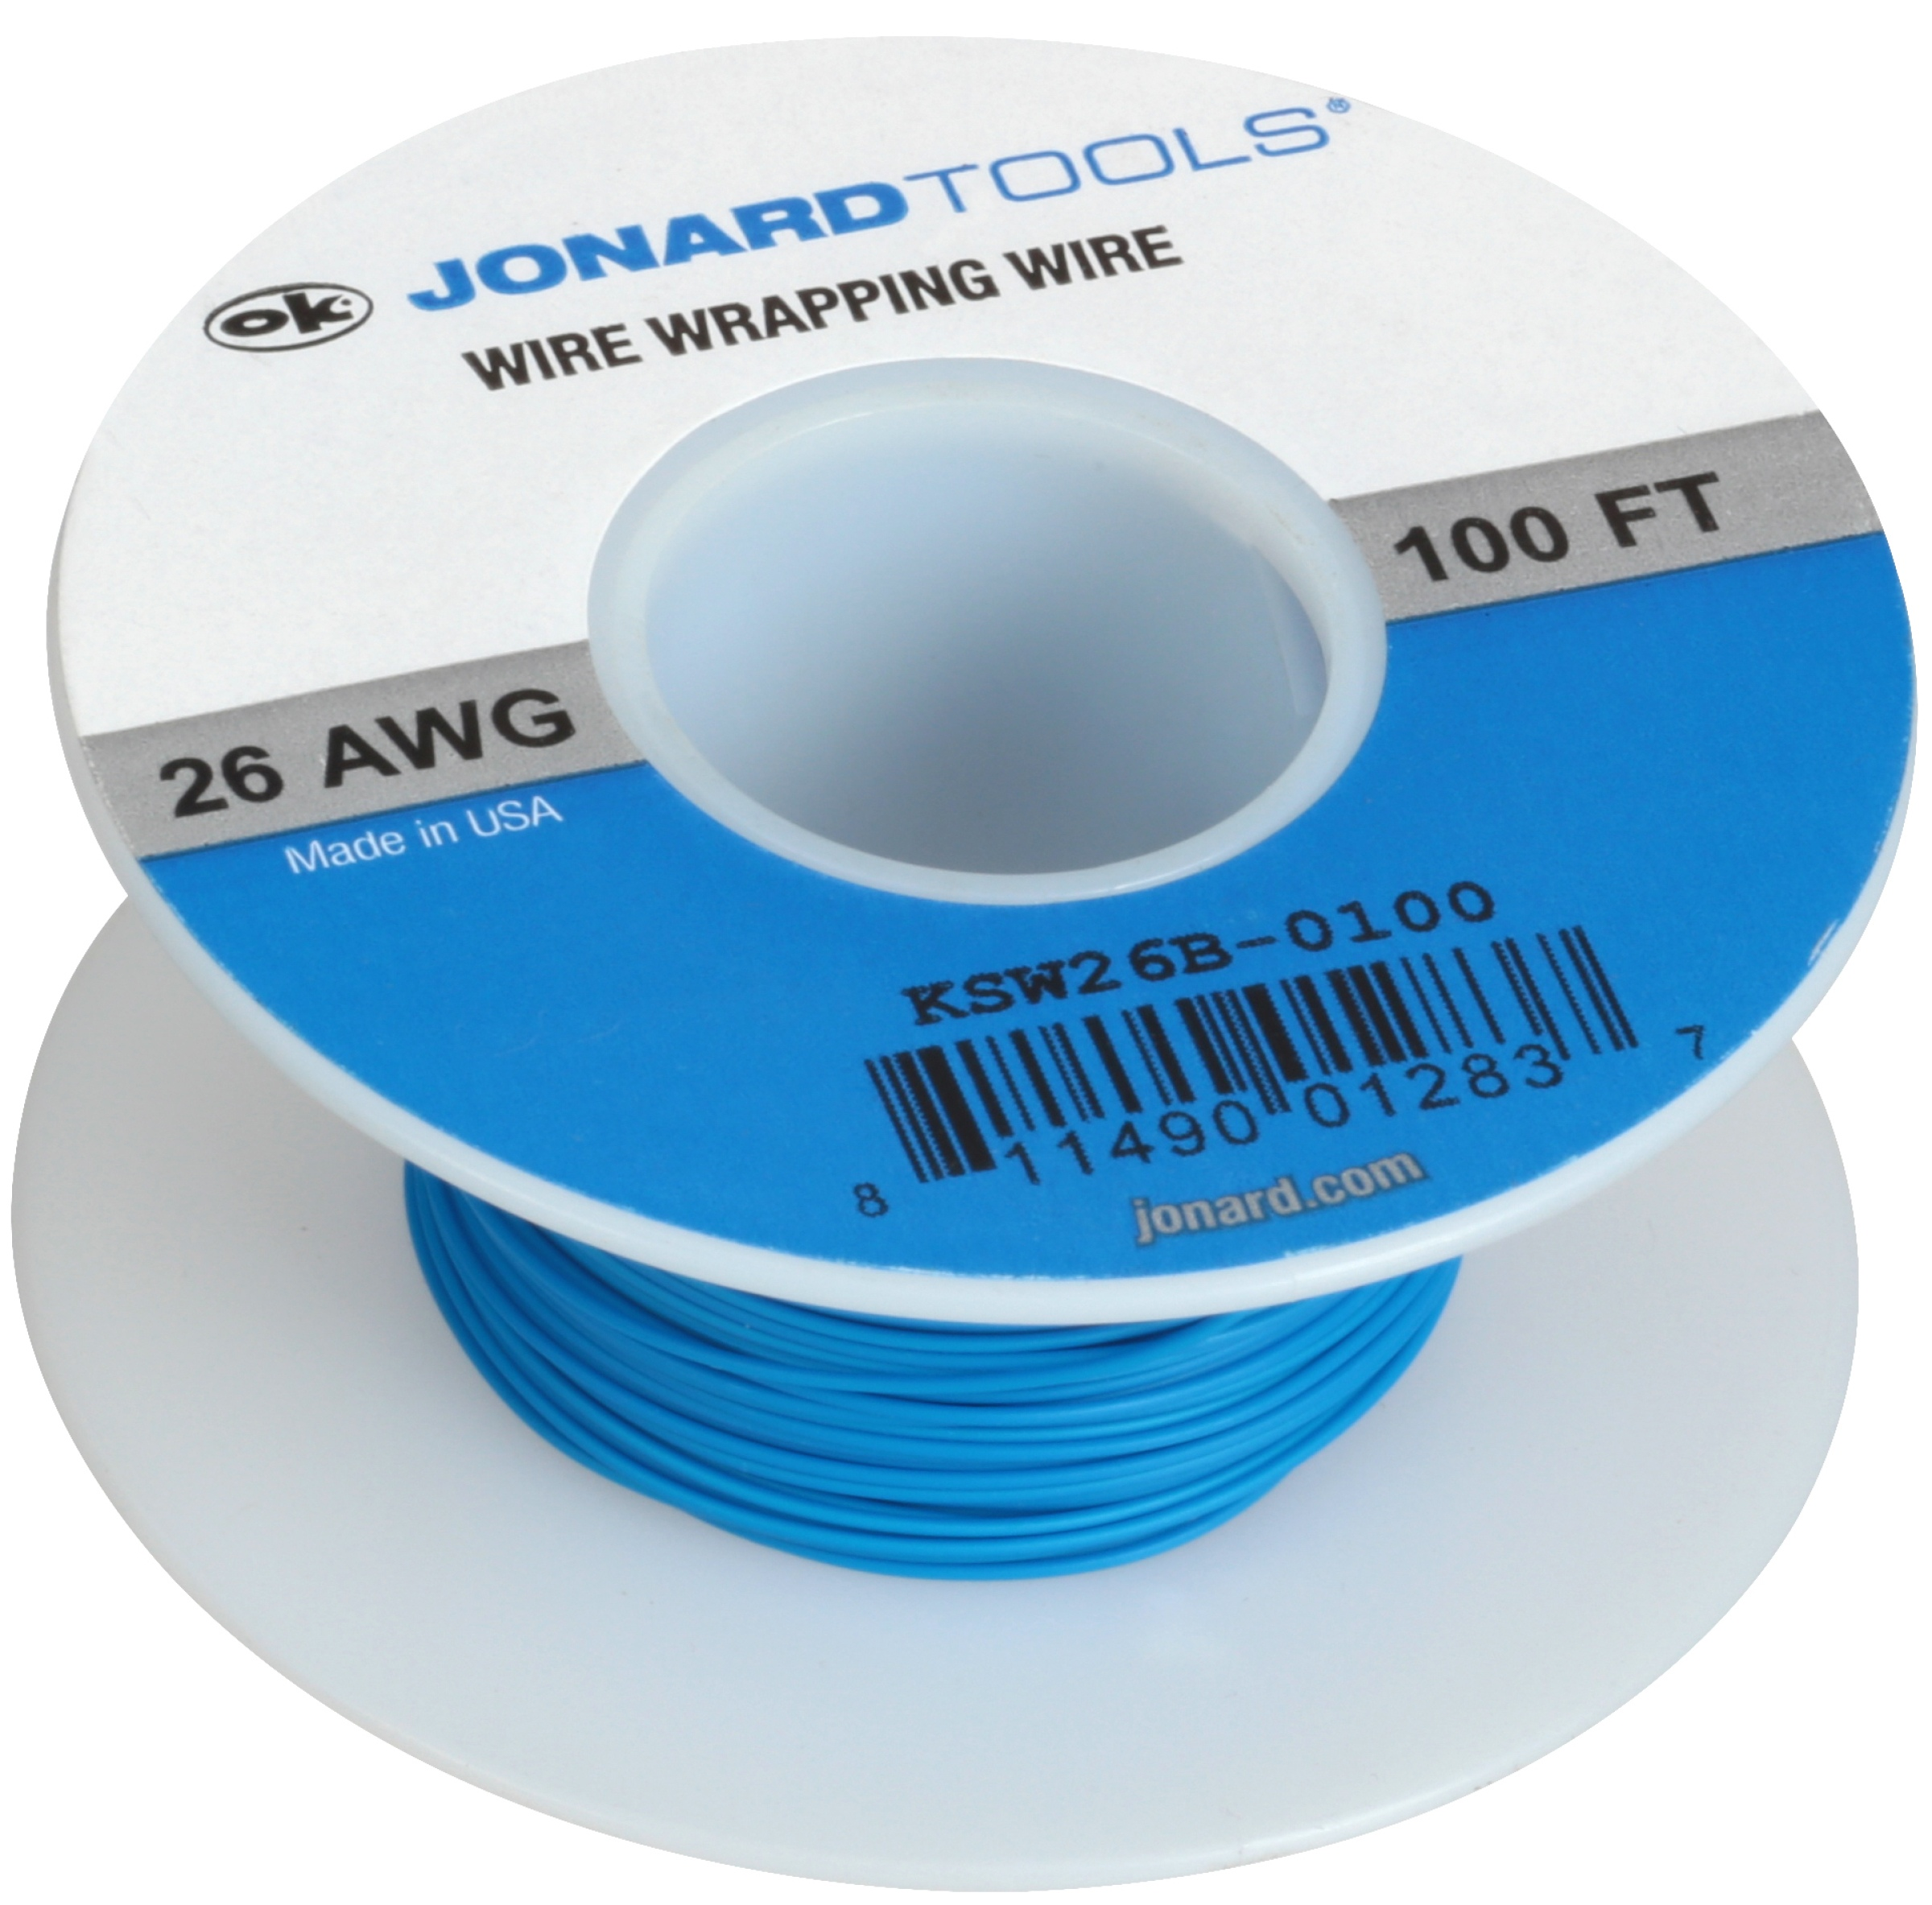 Jonard Tools® 26 AWG Wire Wrapping Wire 100 ft. Pack